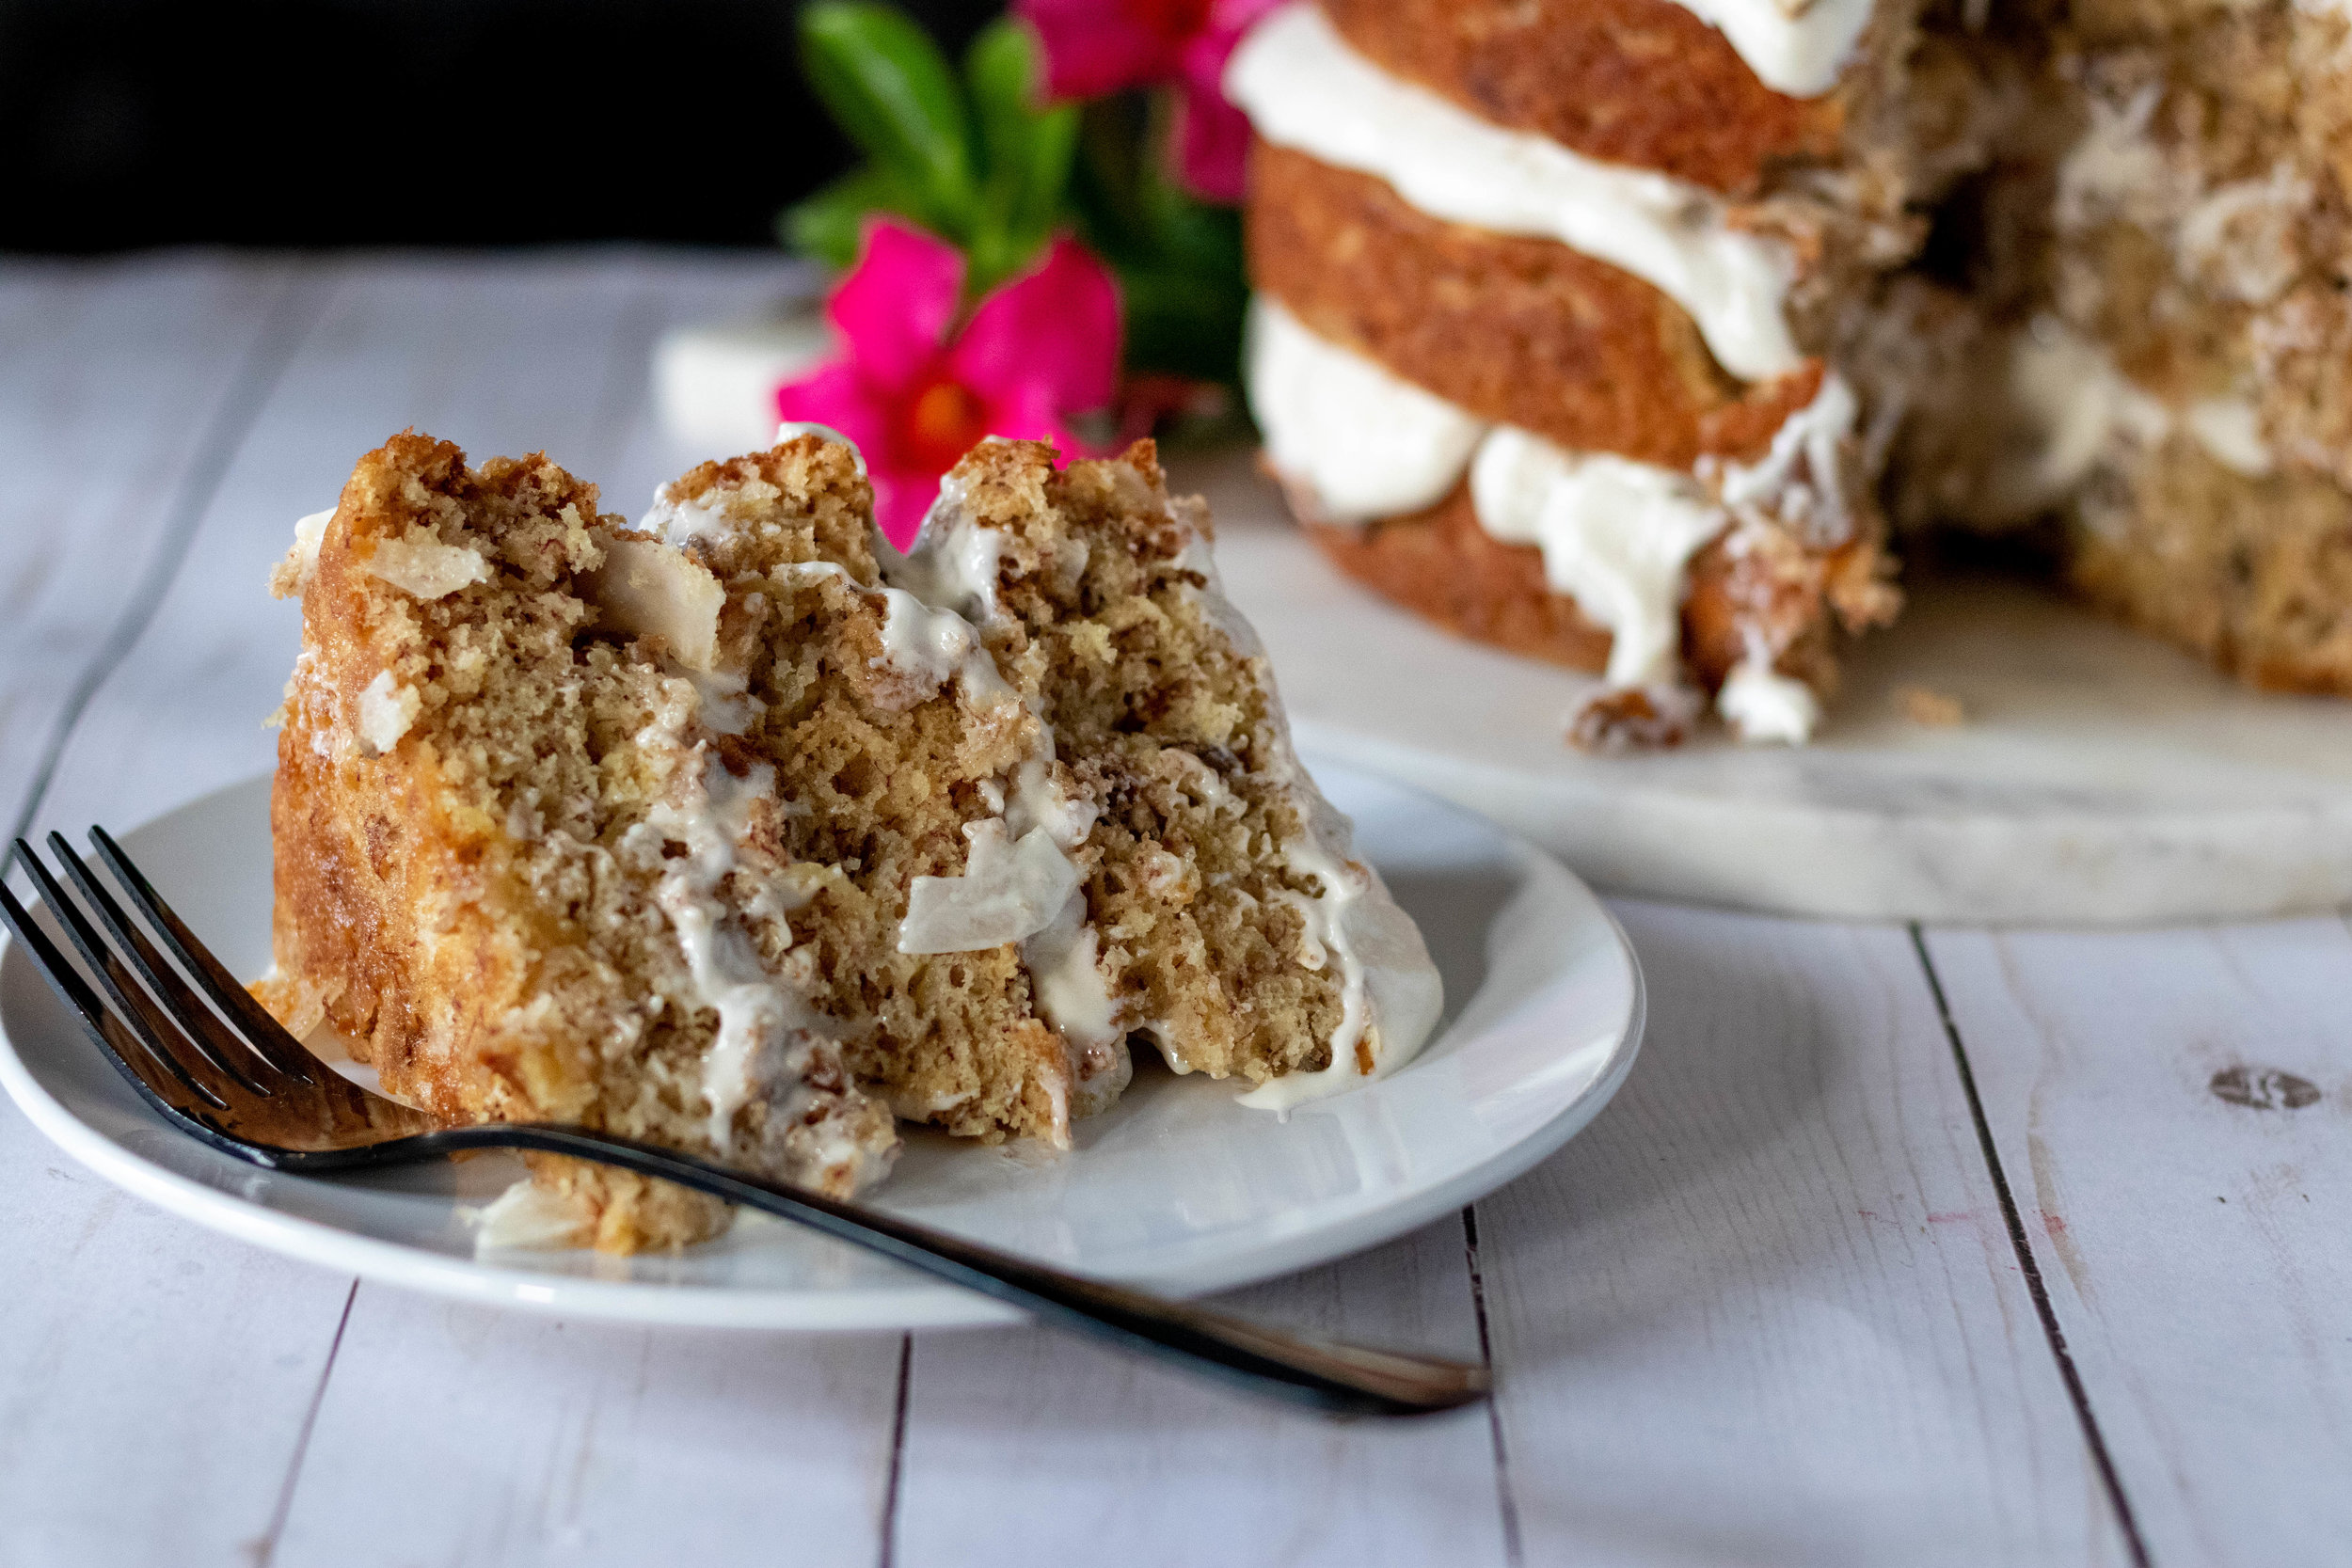 A piece of Hummingbird Cake